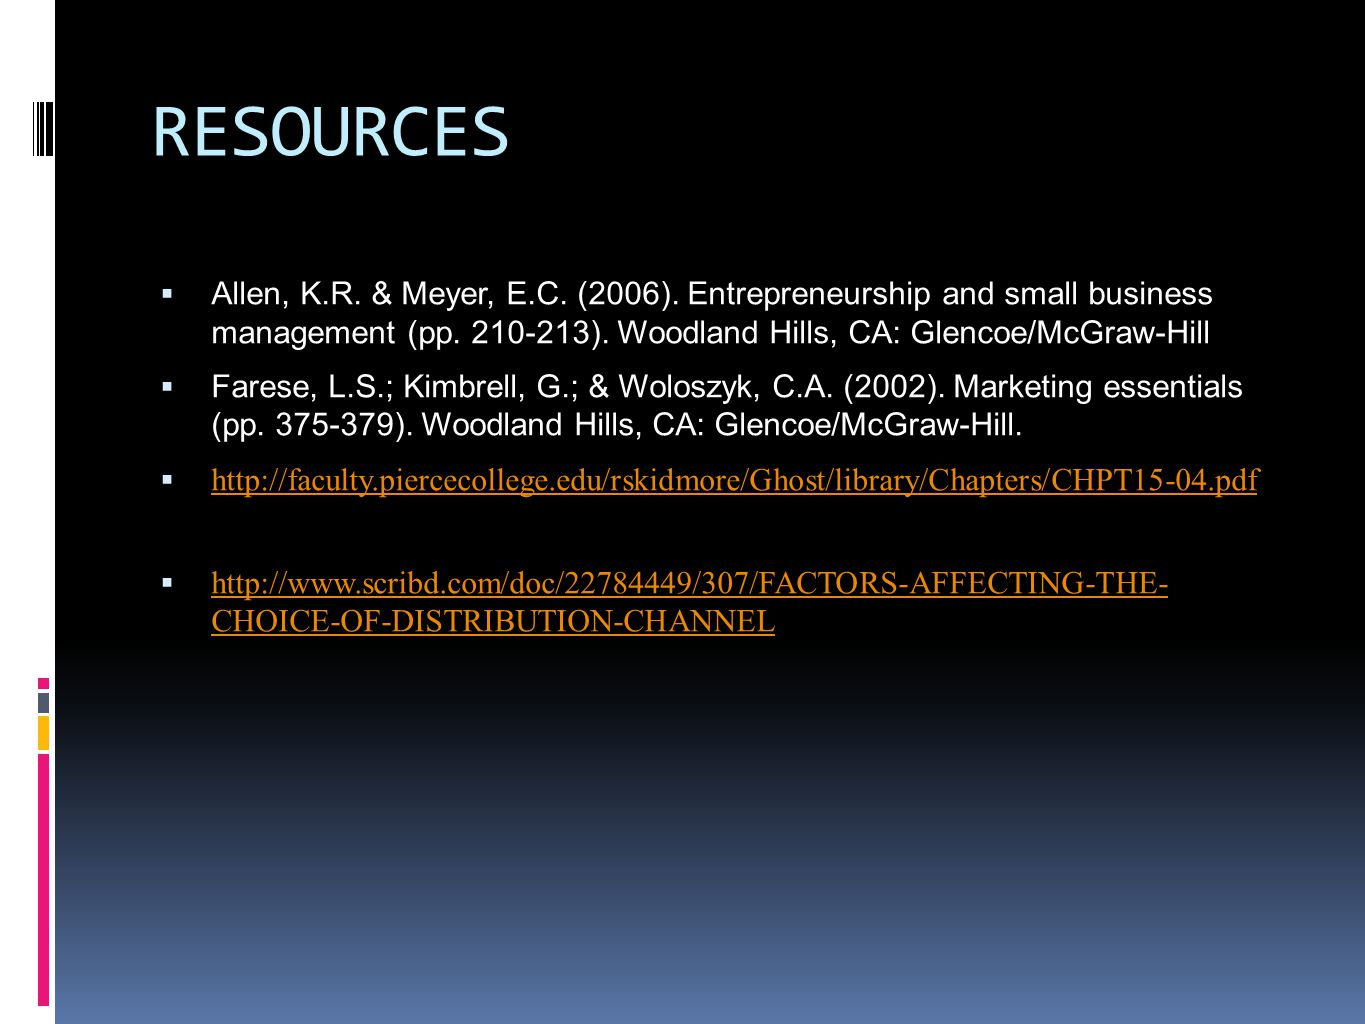 RESOURCES Allen, K.R. & Meyer, E.C. (2006). Entrepreneurship and small business management (pp ). Woodland Hills, CA: Glencoe/McGraw-Hill.